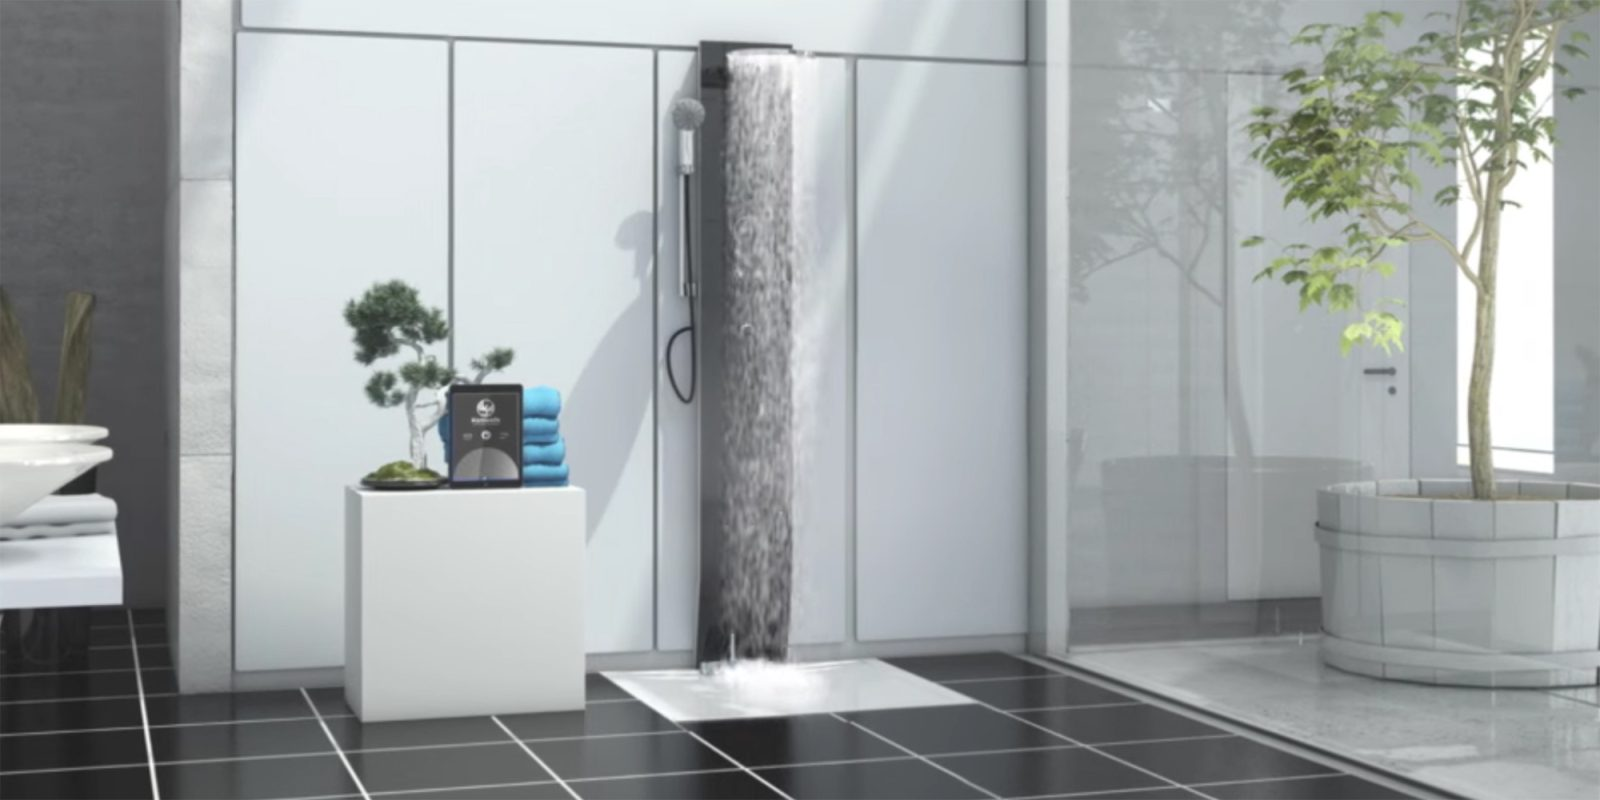 The new iOS-connected Hamwells e-Shower recycles your water with eyes on saving energy